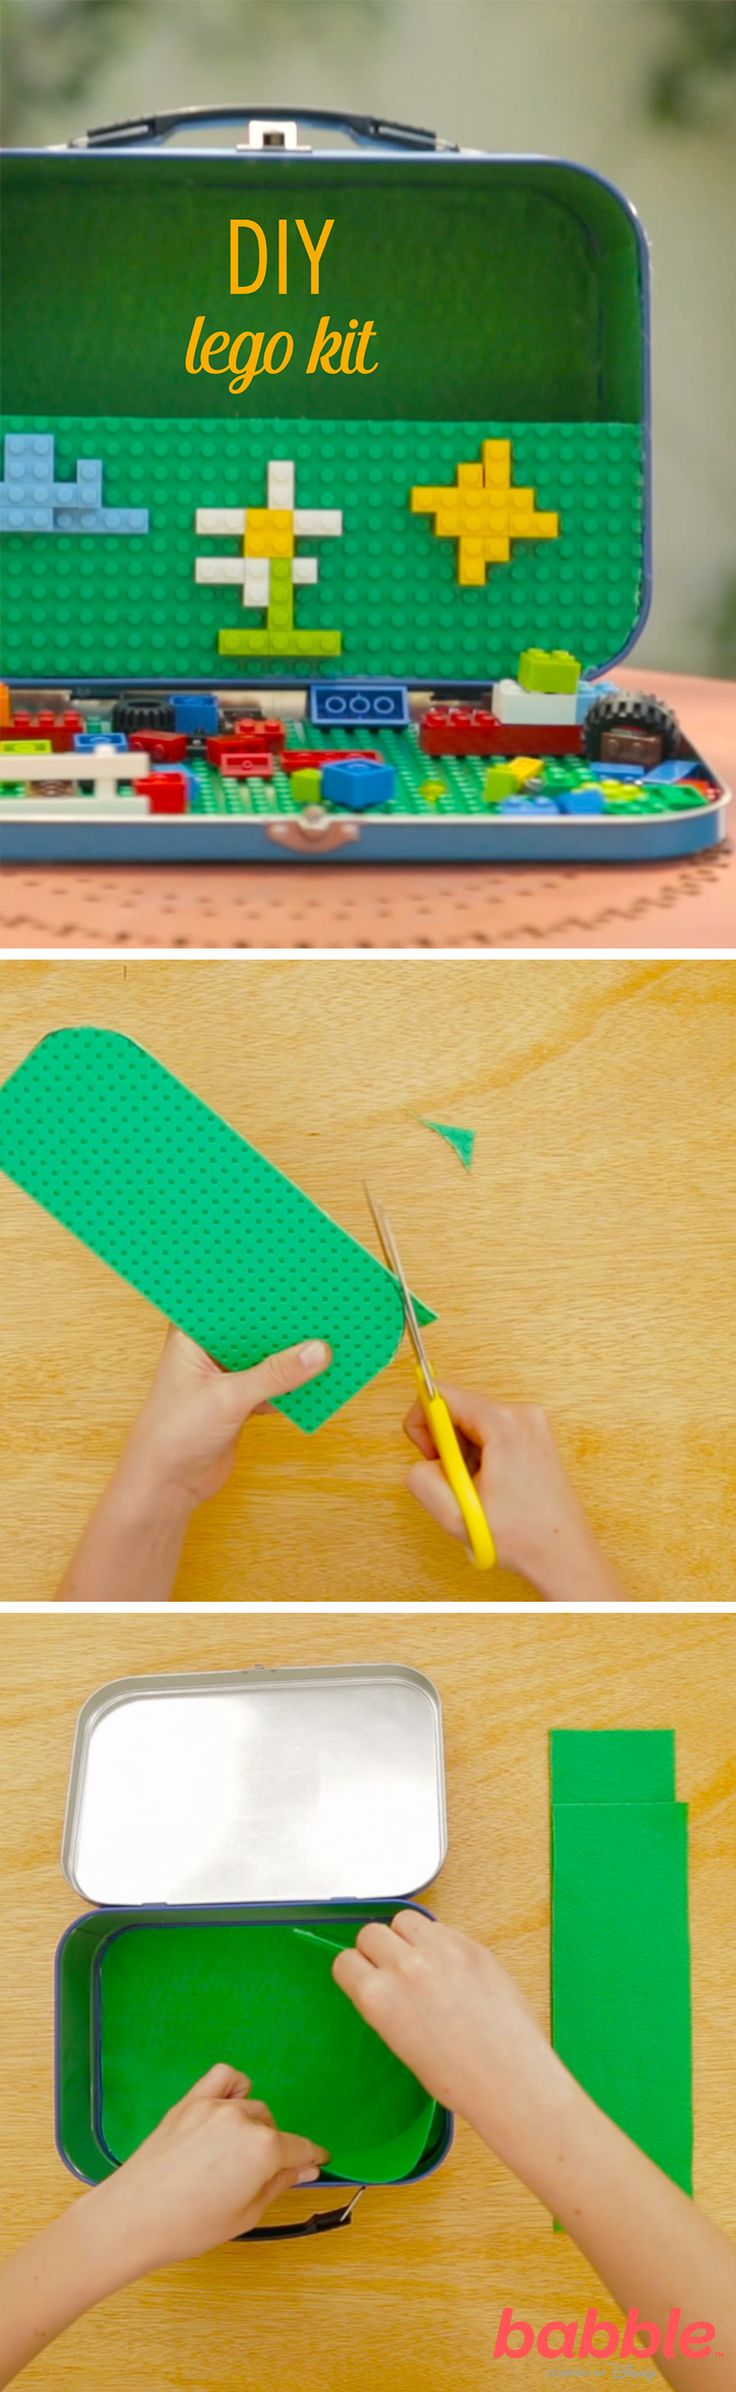 Do your kids always seem to be misplacing legos? This DIY Lego Kit is an easy solution! Just grab a lunchbox and create this perfectly portable toy kit for summer picnics or vacations.